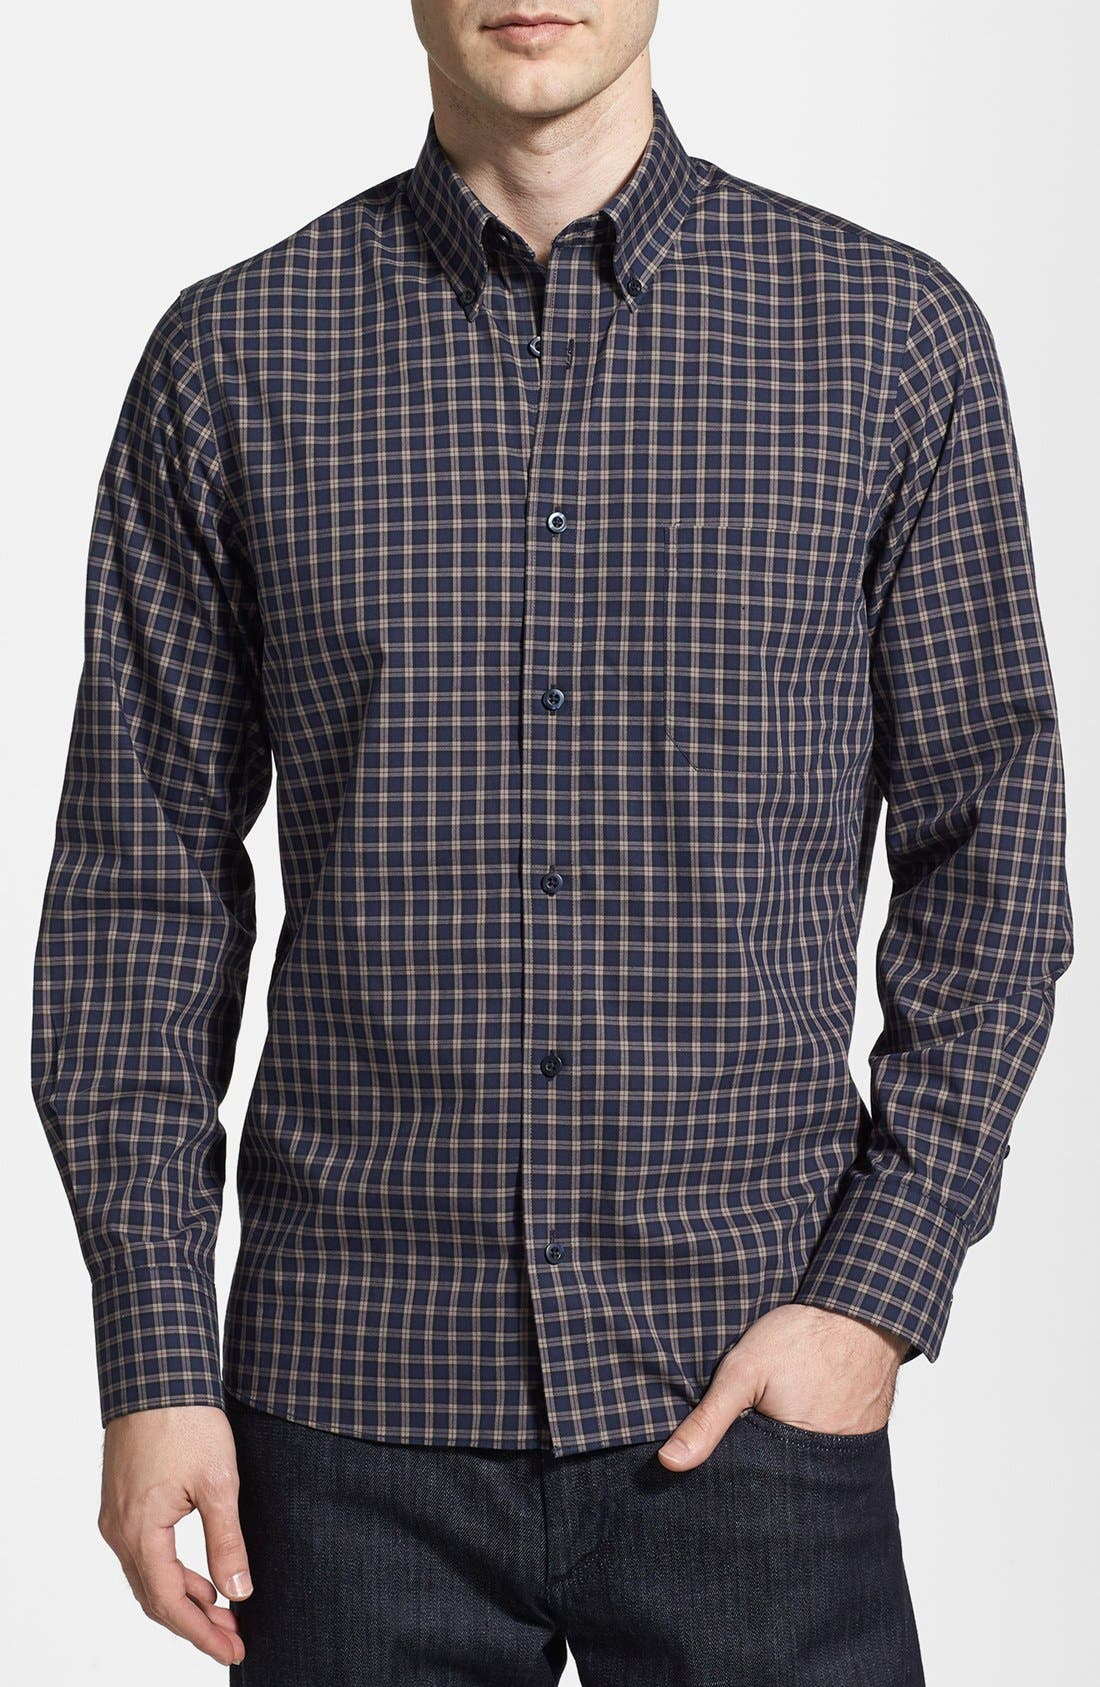 Main Image - Nordstrom Smartcare™ Trim Fit Plaid Sport Shirt